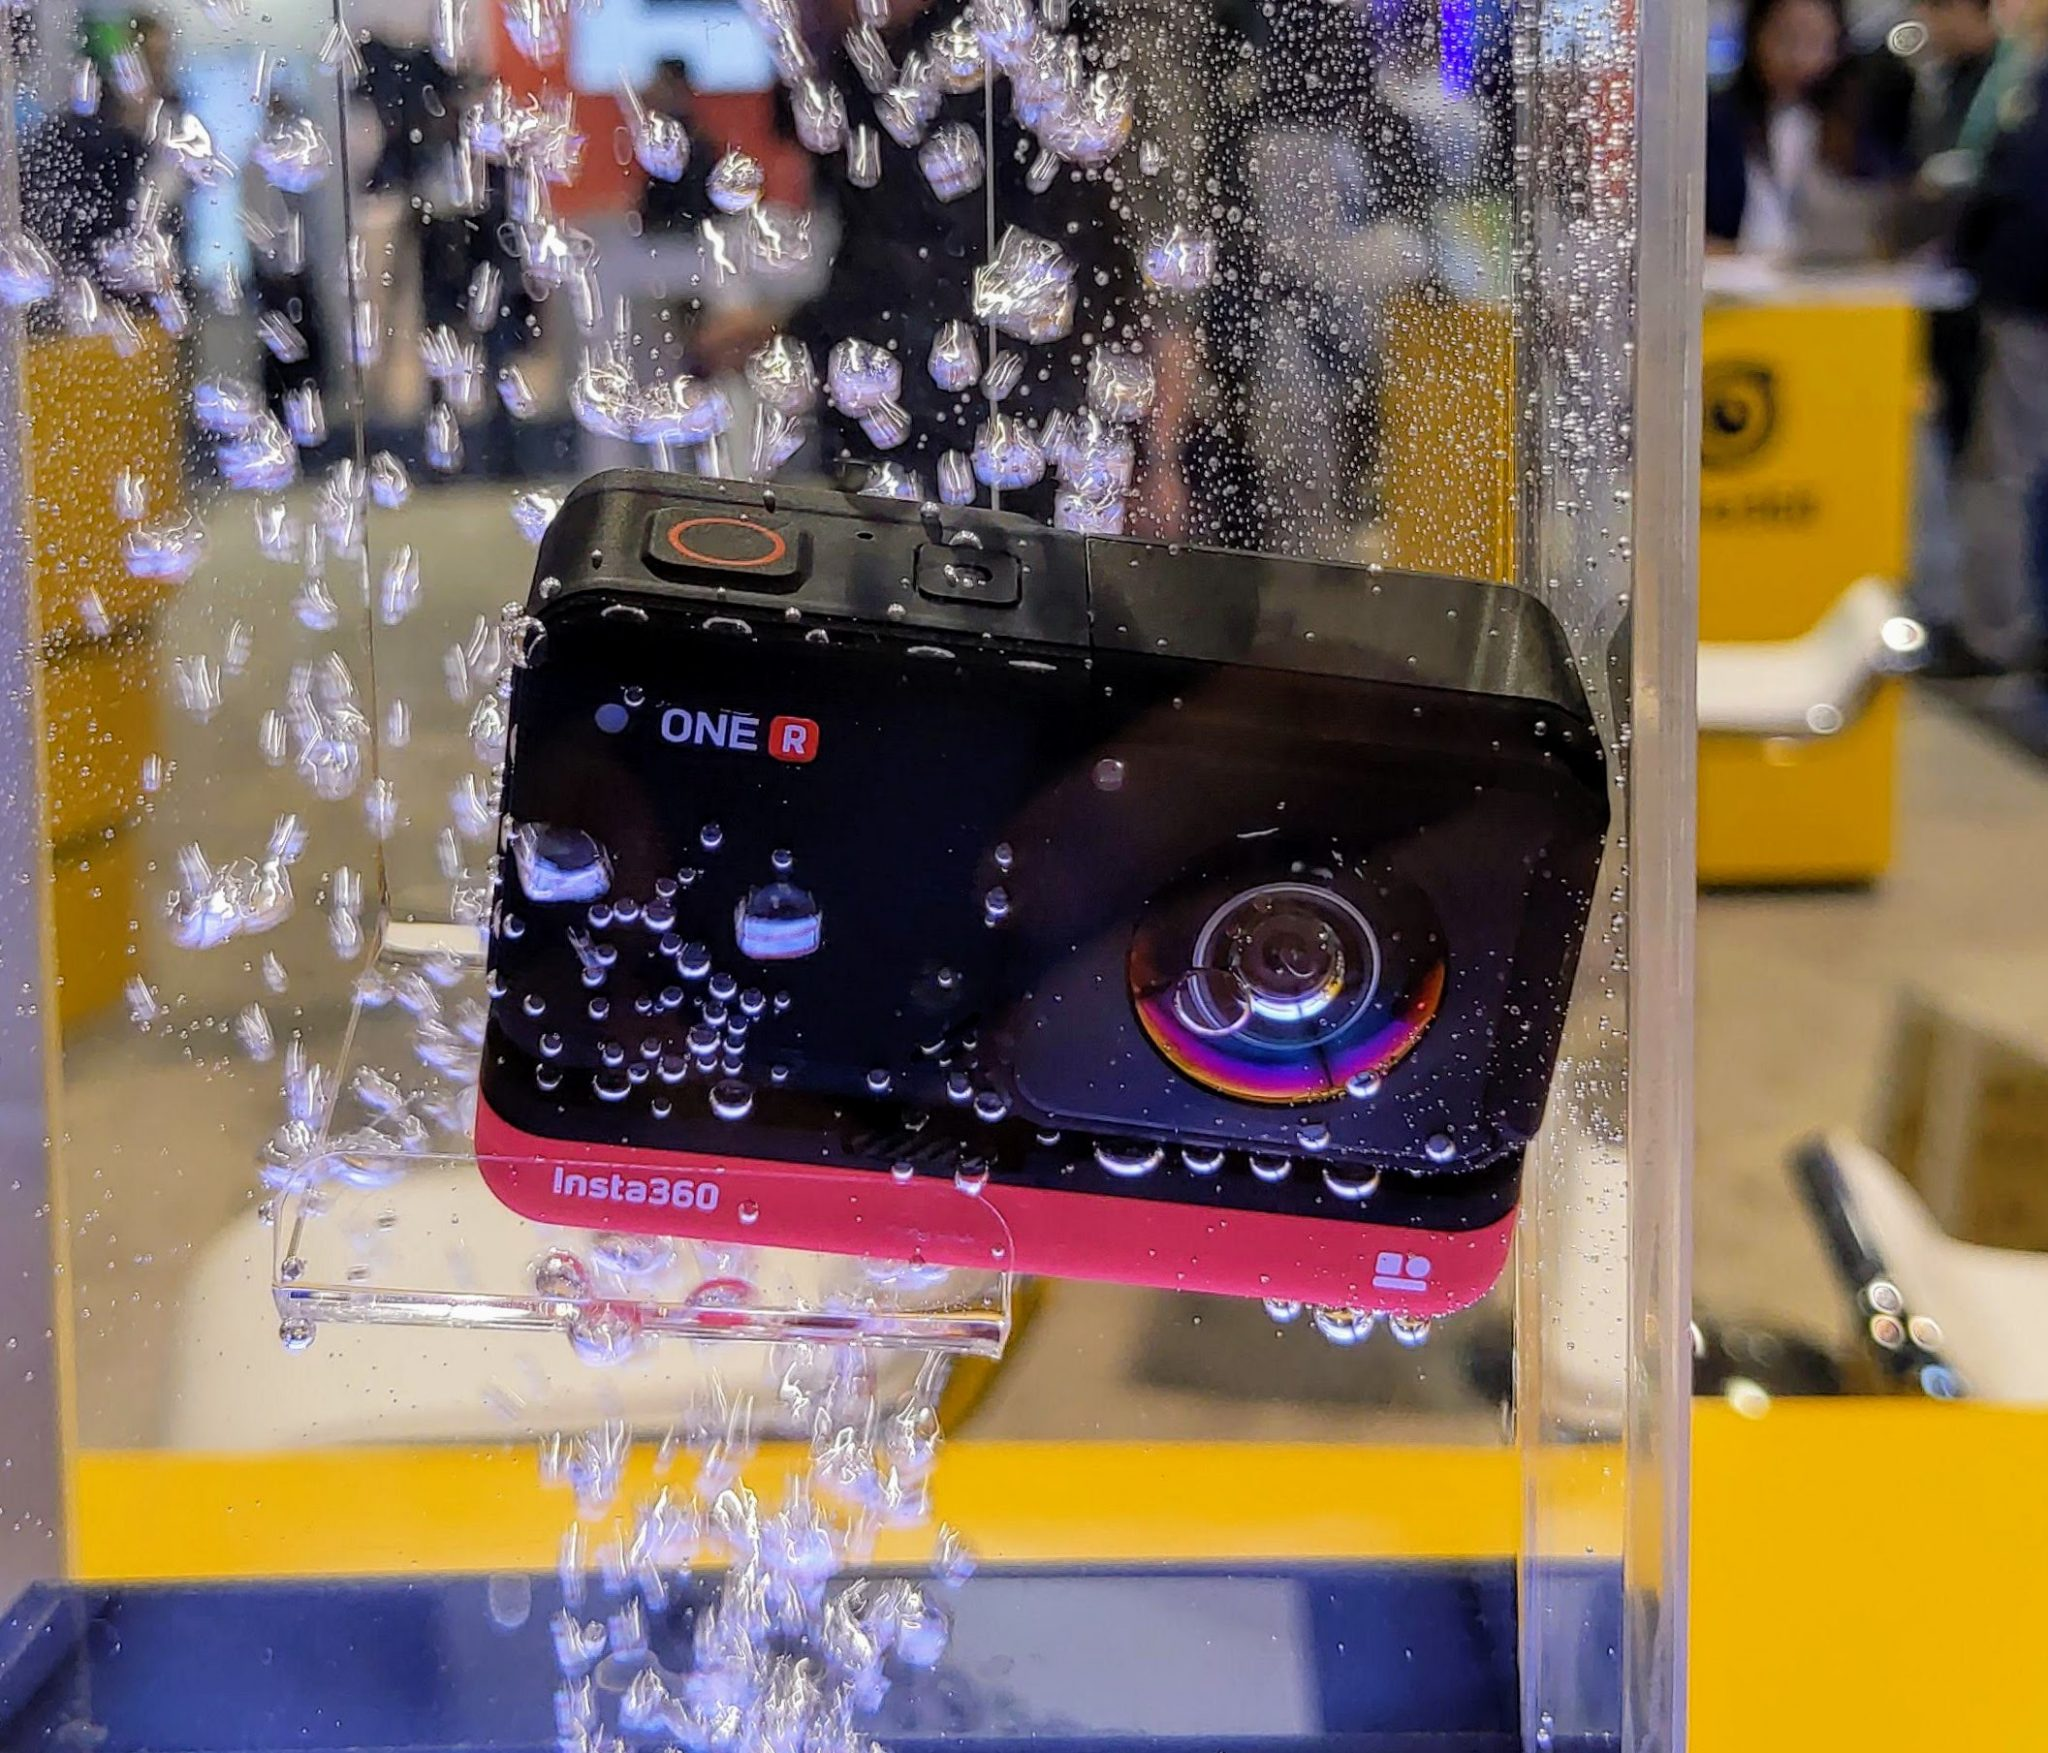 Insta360 One R in water